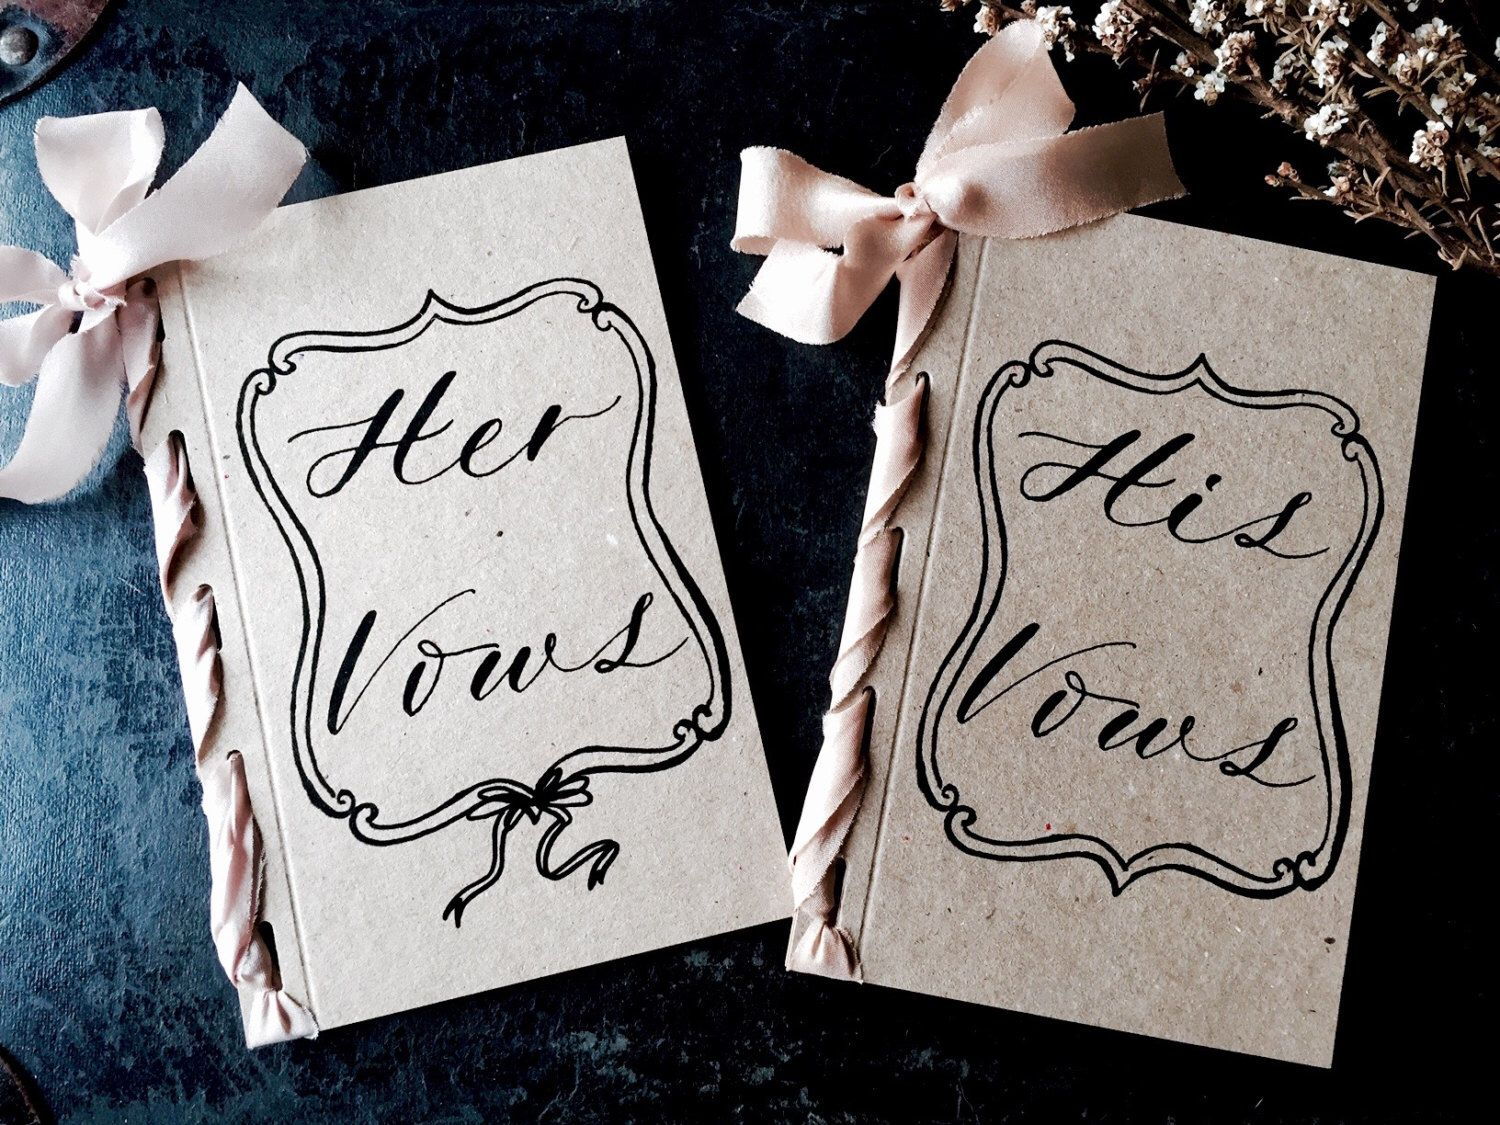 Leslie wedding vow booklets and printed vows by lapommeetlapipe on